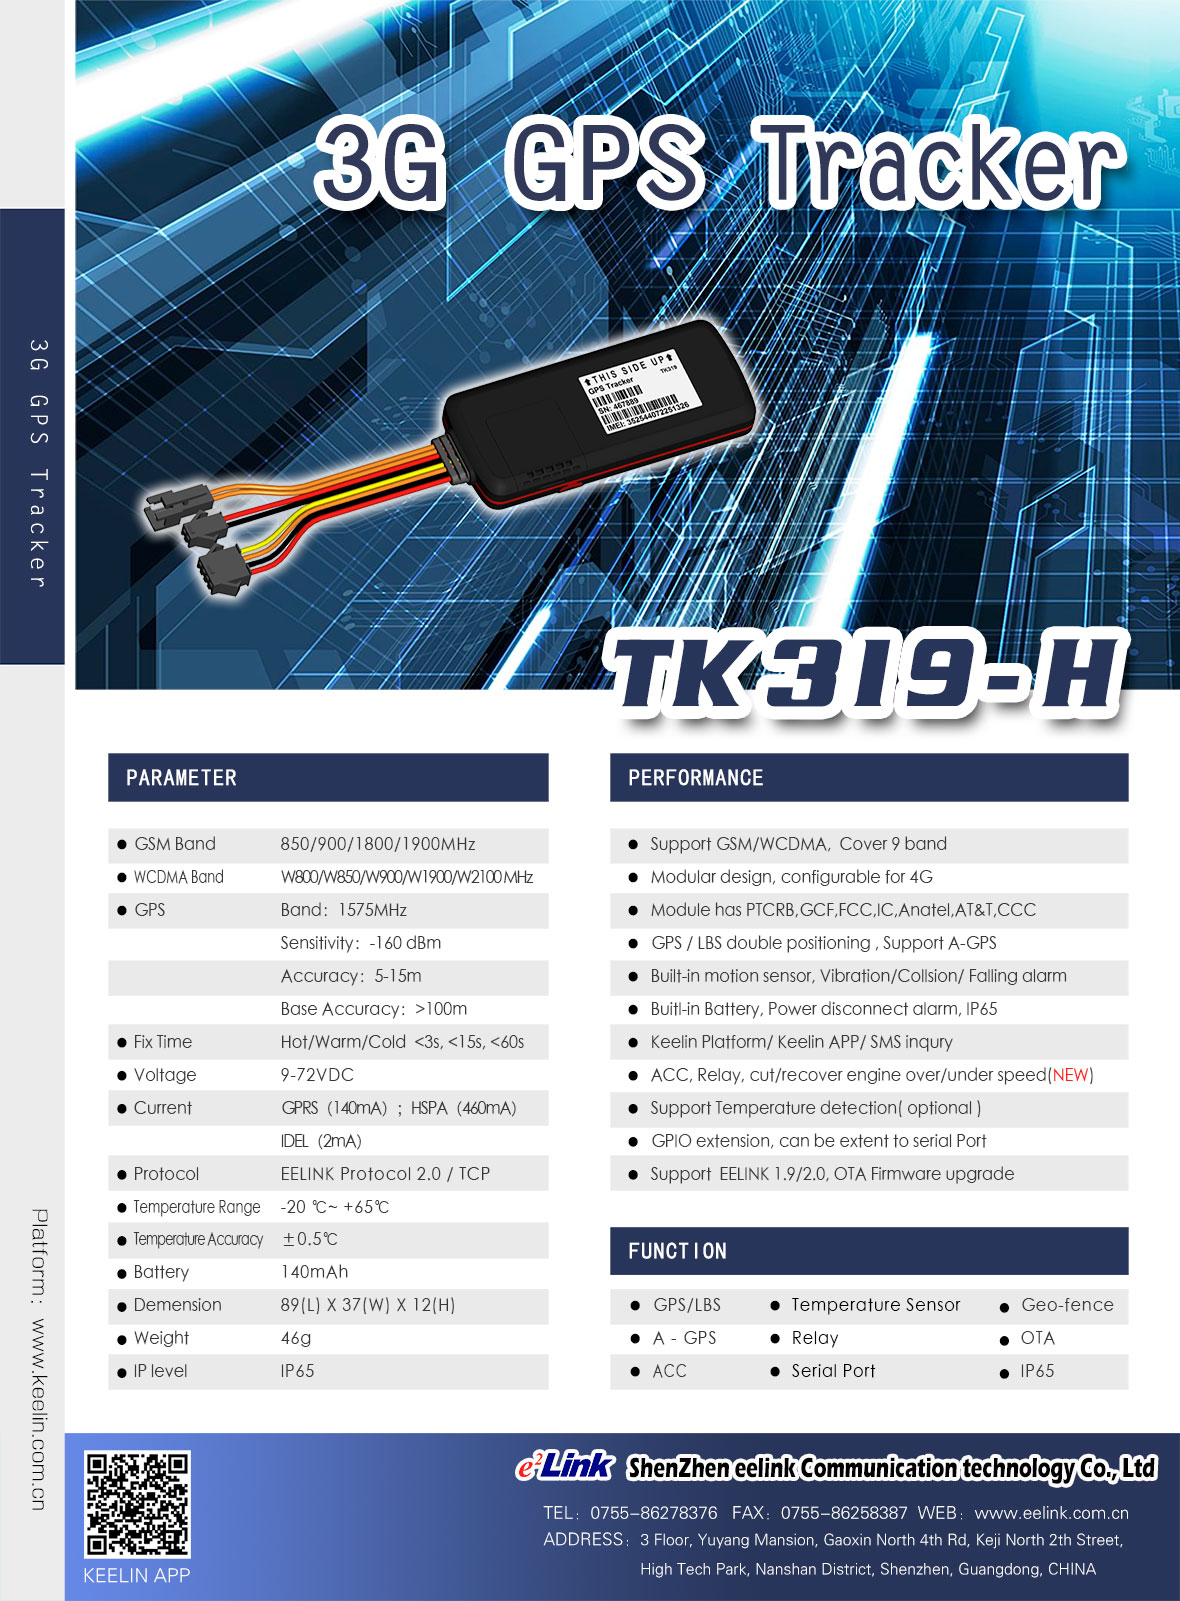 3G GPS Tracker TK319-H Specification